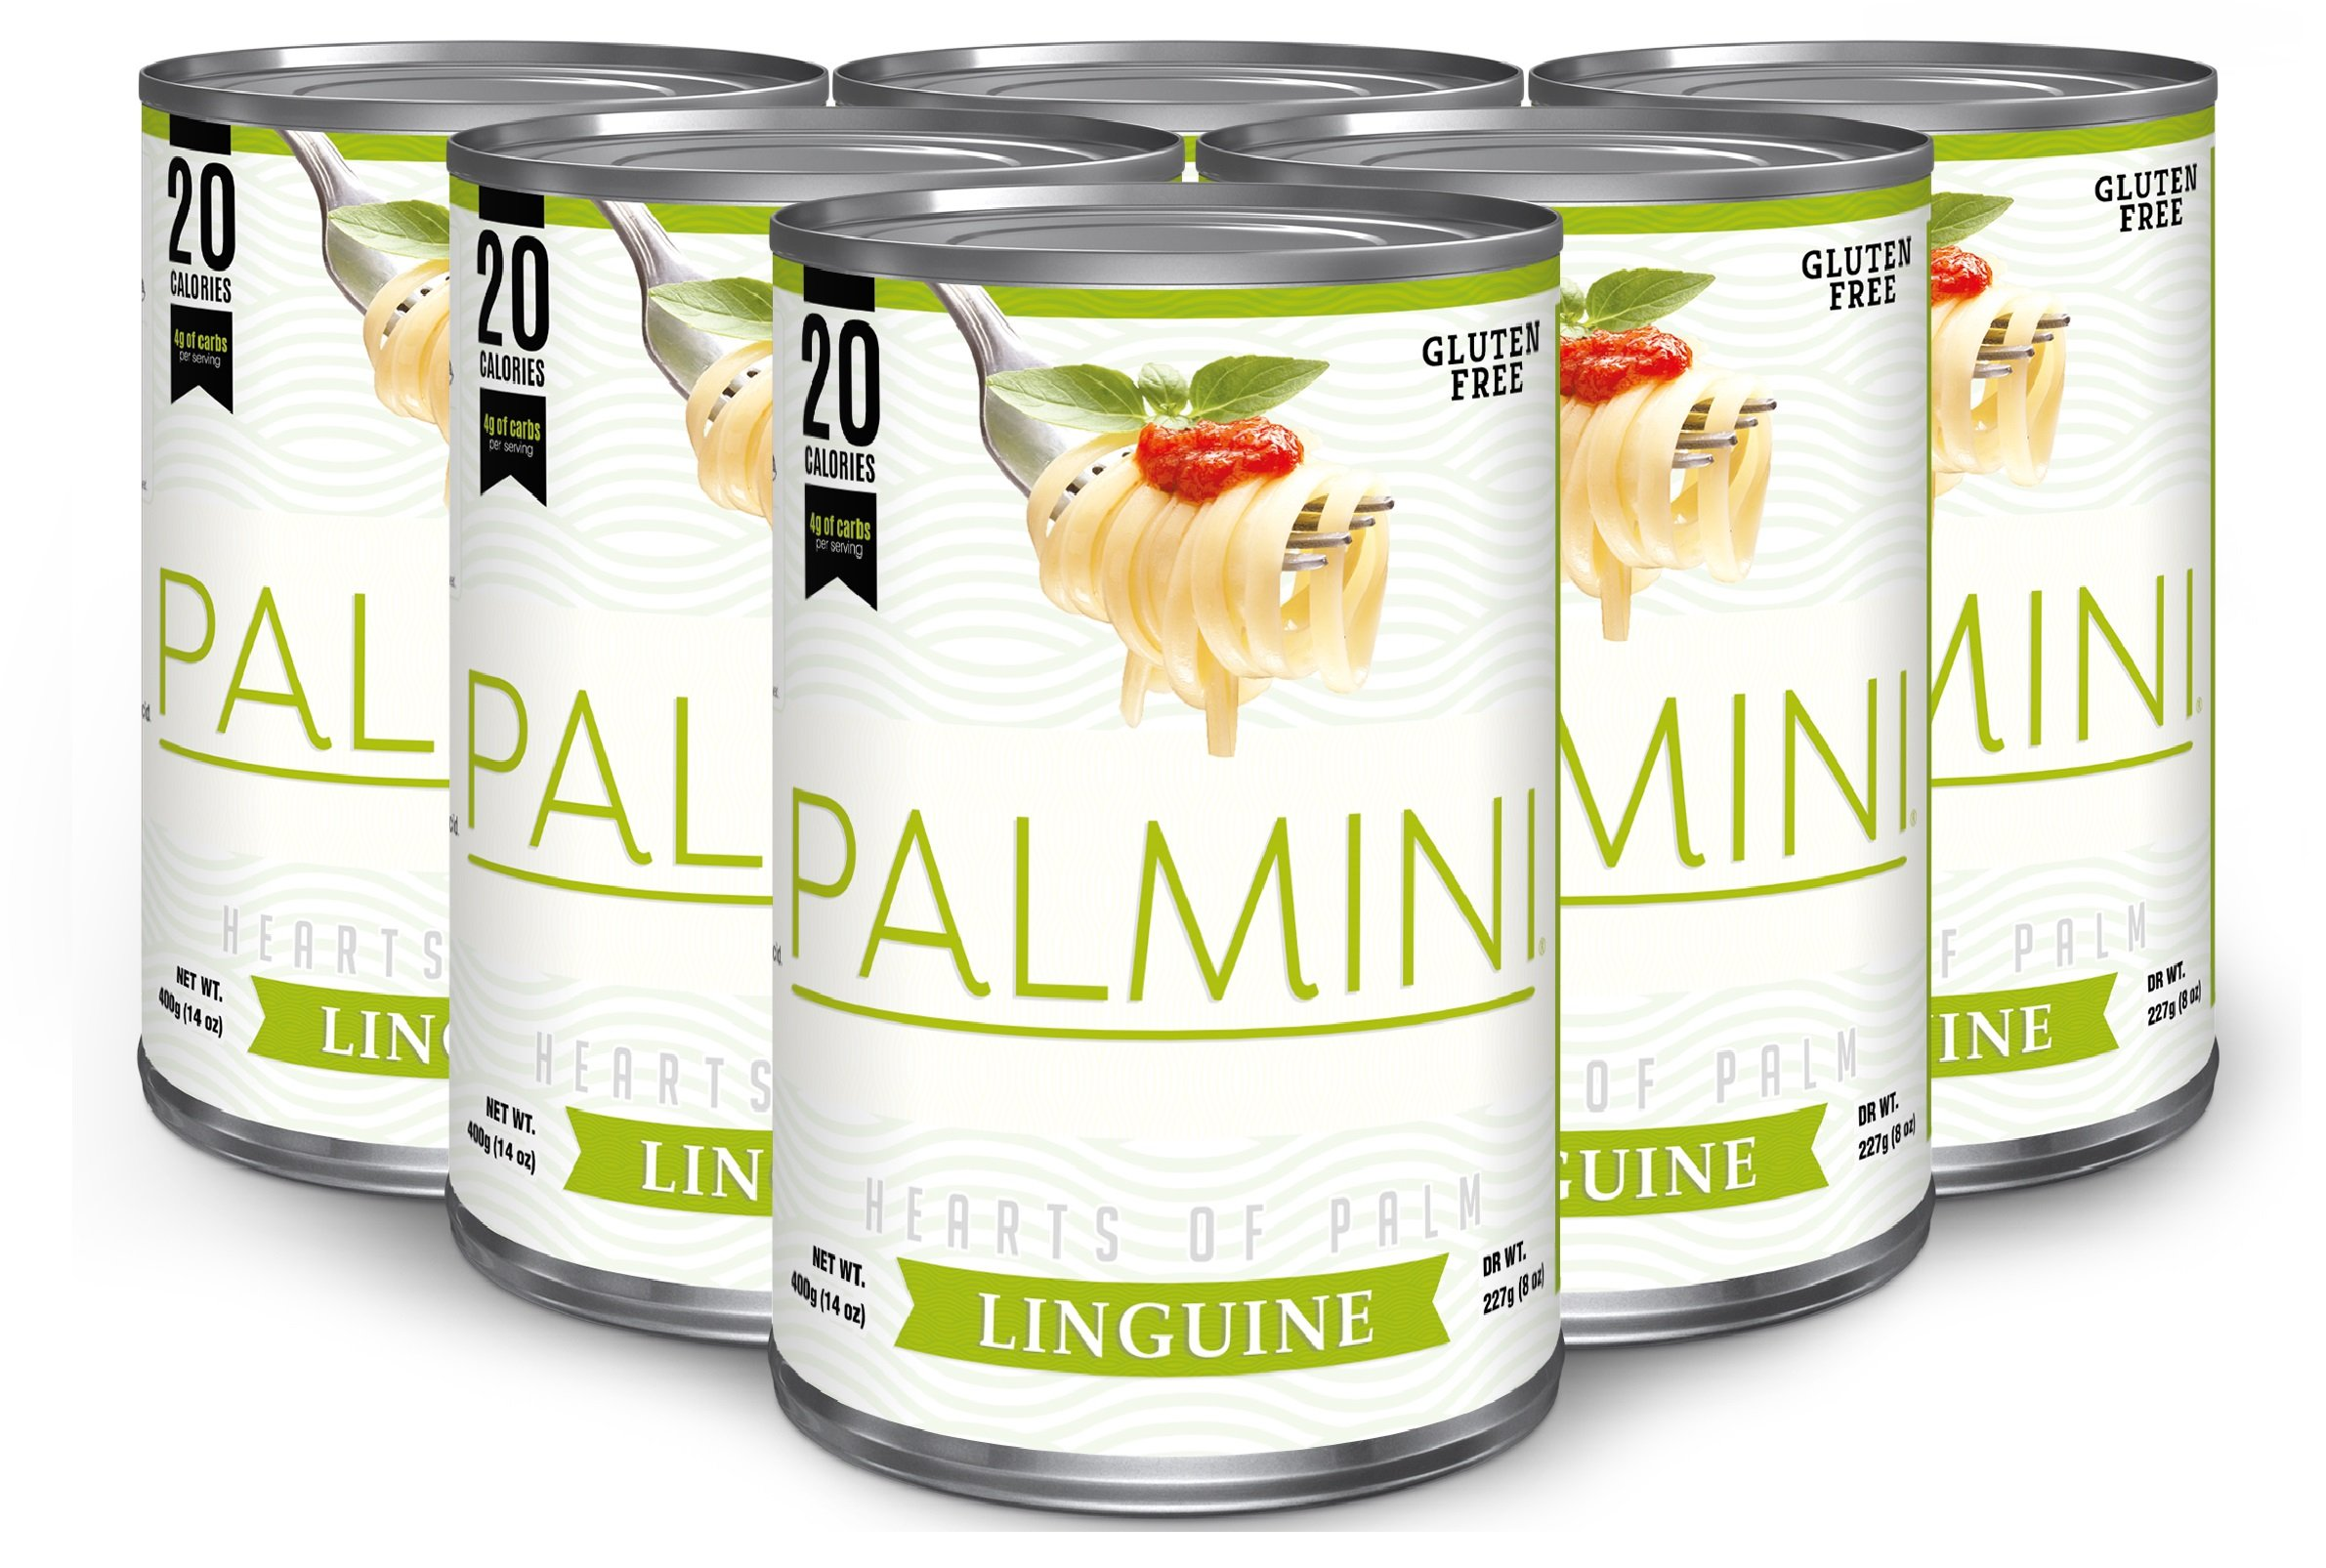 Palmini Low Carb Pasta | 4g of Carbs | As Seen On Shark Tank | 14 Oz. Can (6 Unit Case) by Palmini